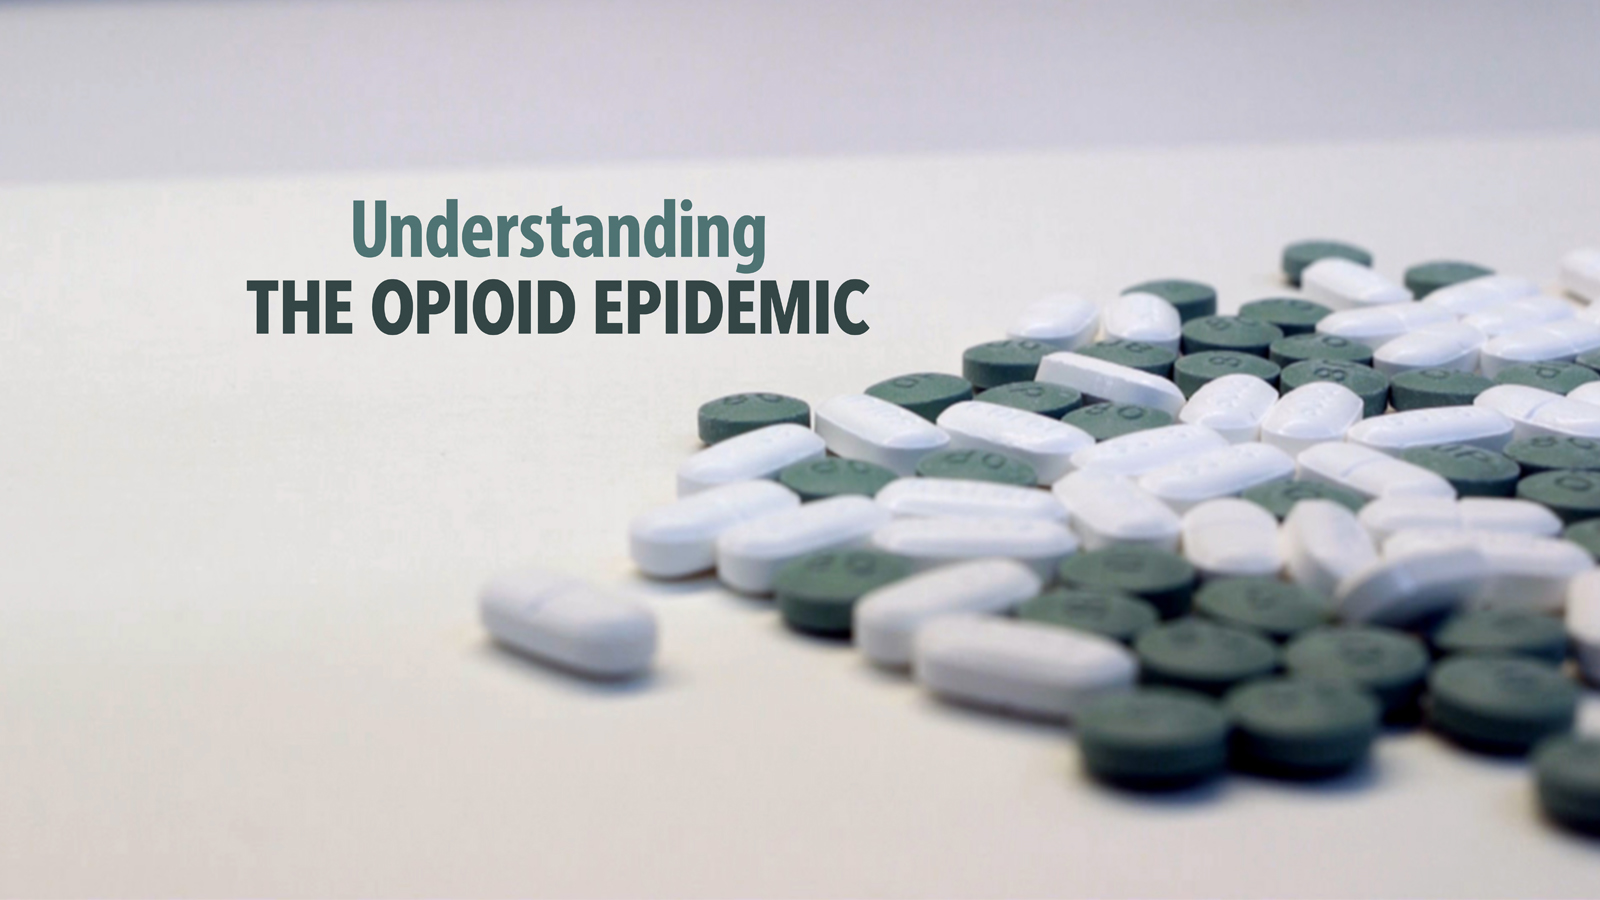 Understanding the Opioid Epidemic | WNED-TV production for PBS